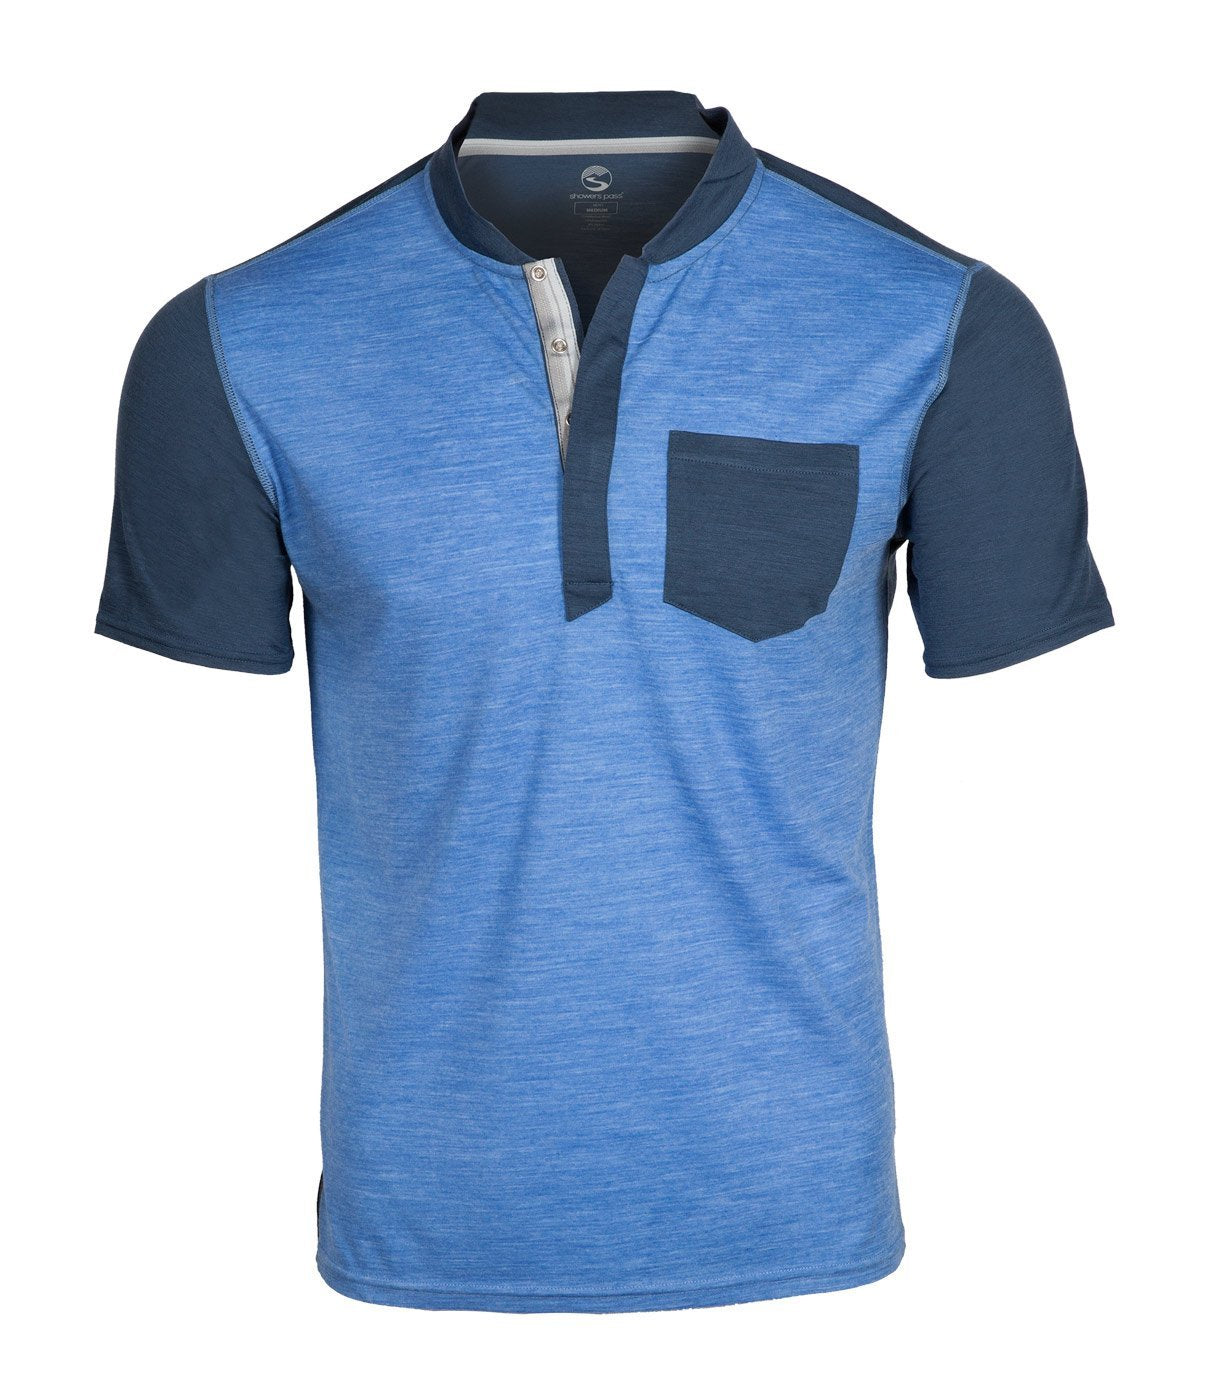 Men's Hi-Line Merino Short Sleeve Shirt